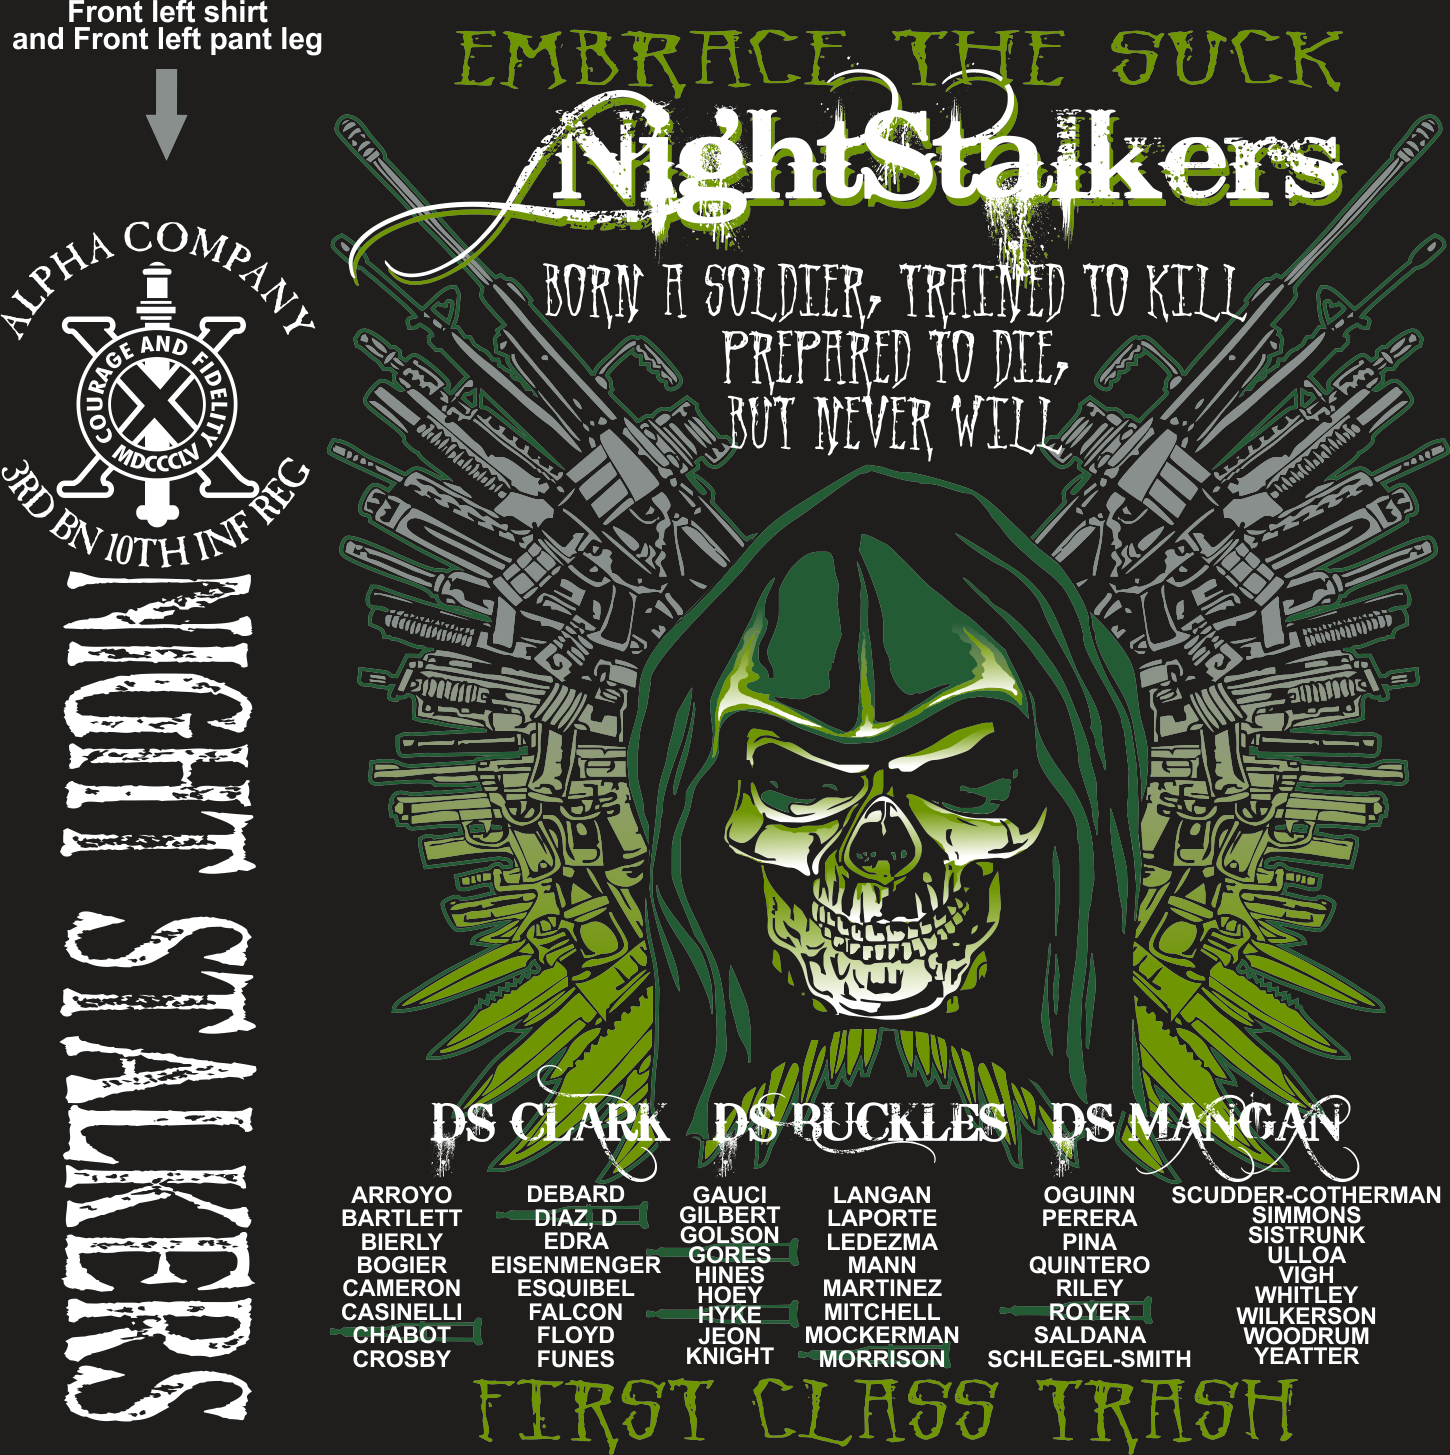 ALPHA 3-10 NIGHT STALKERS GRADUATING DAY 6-1-2017 digital